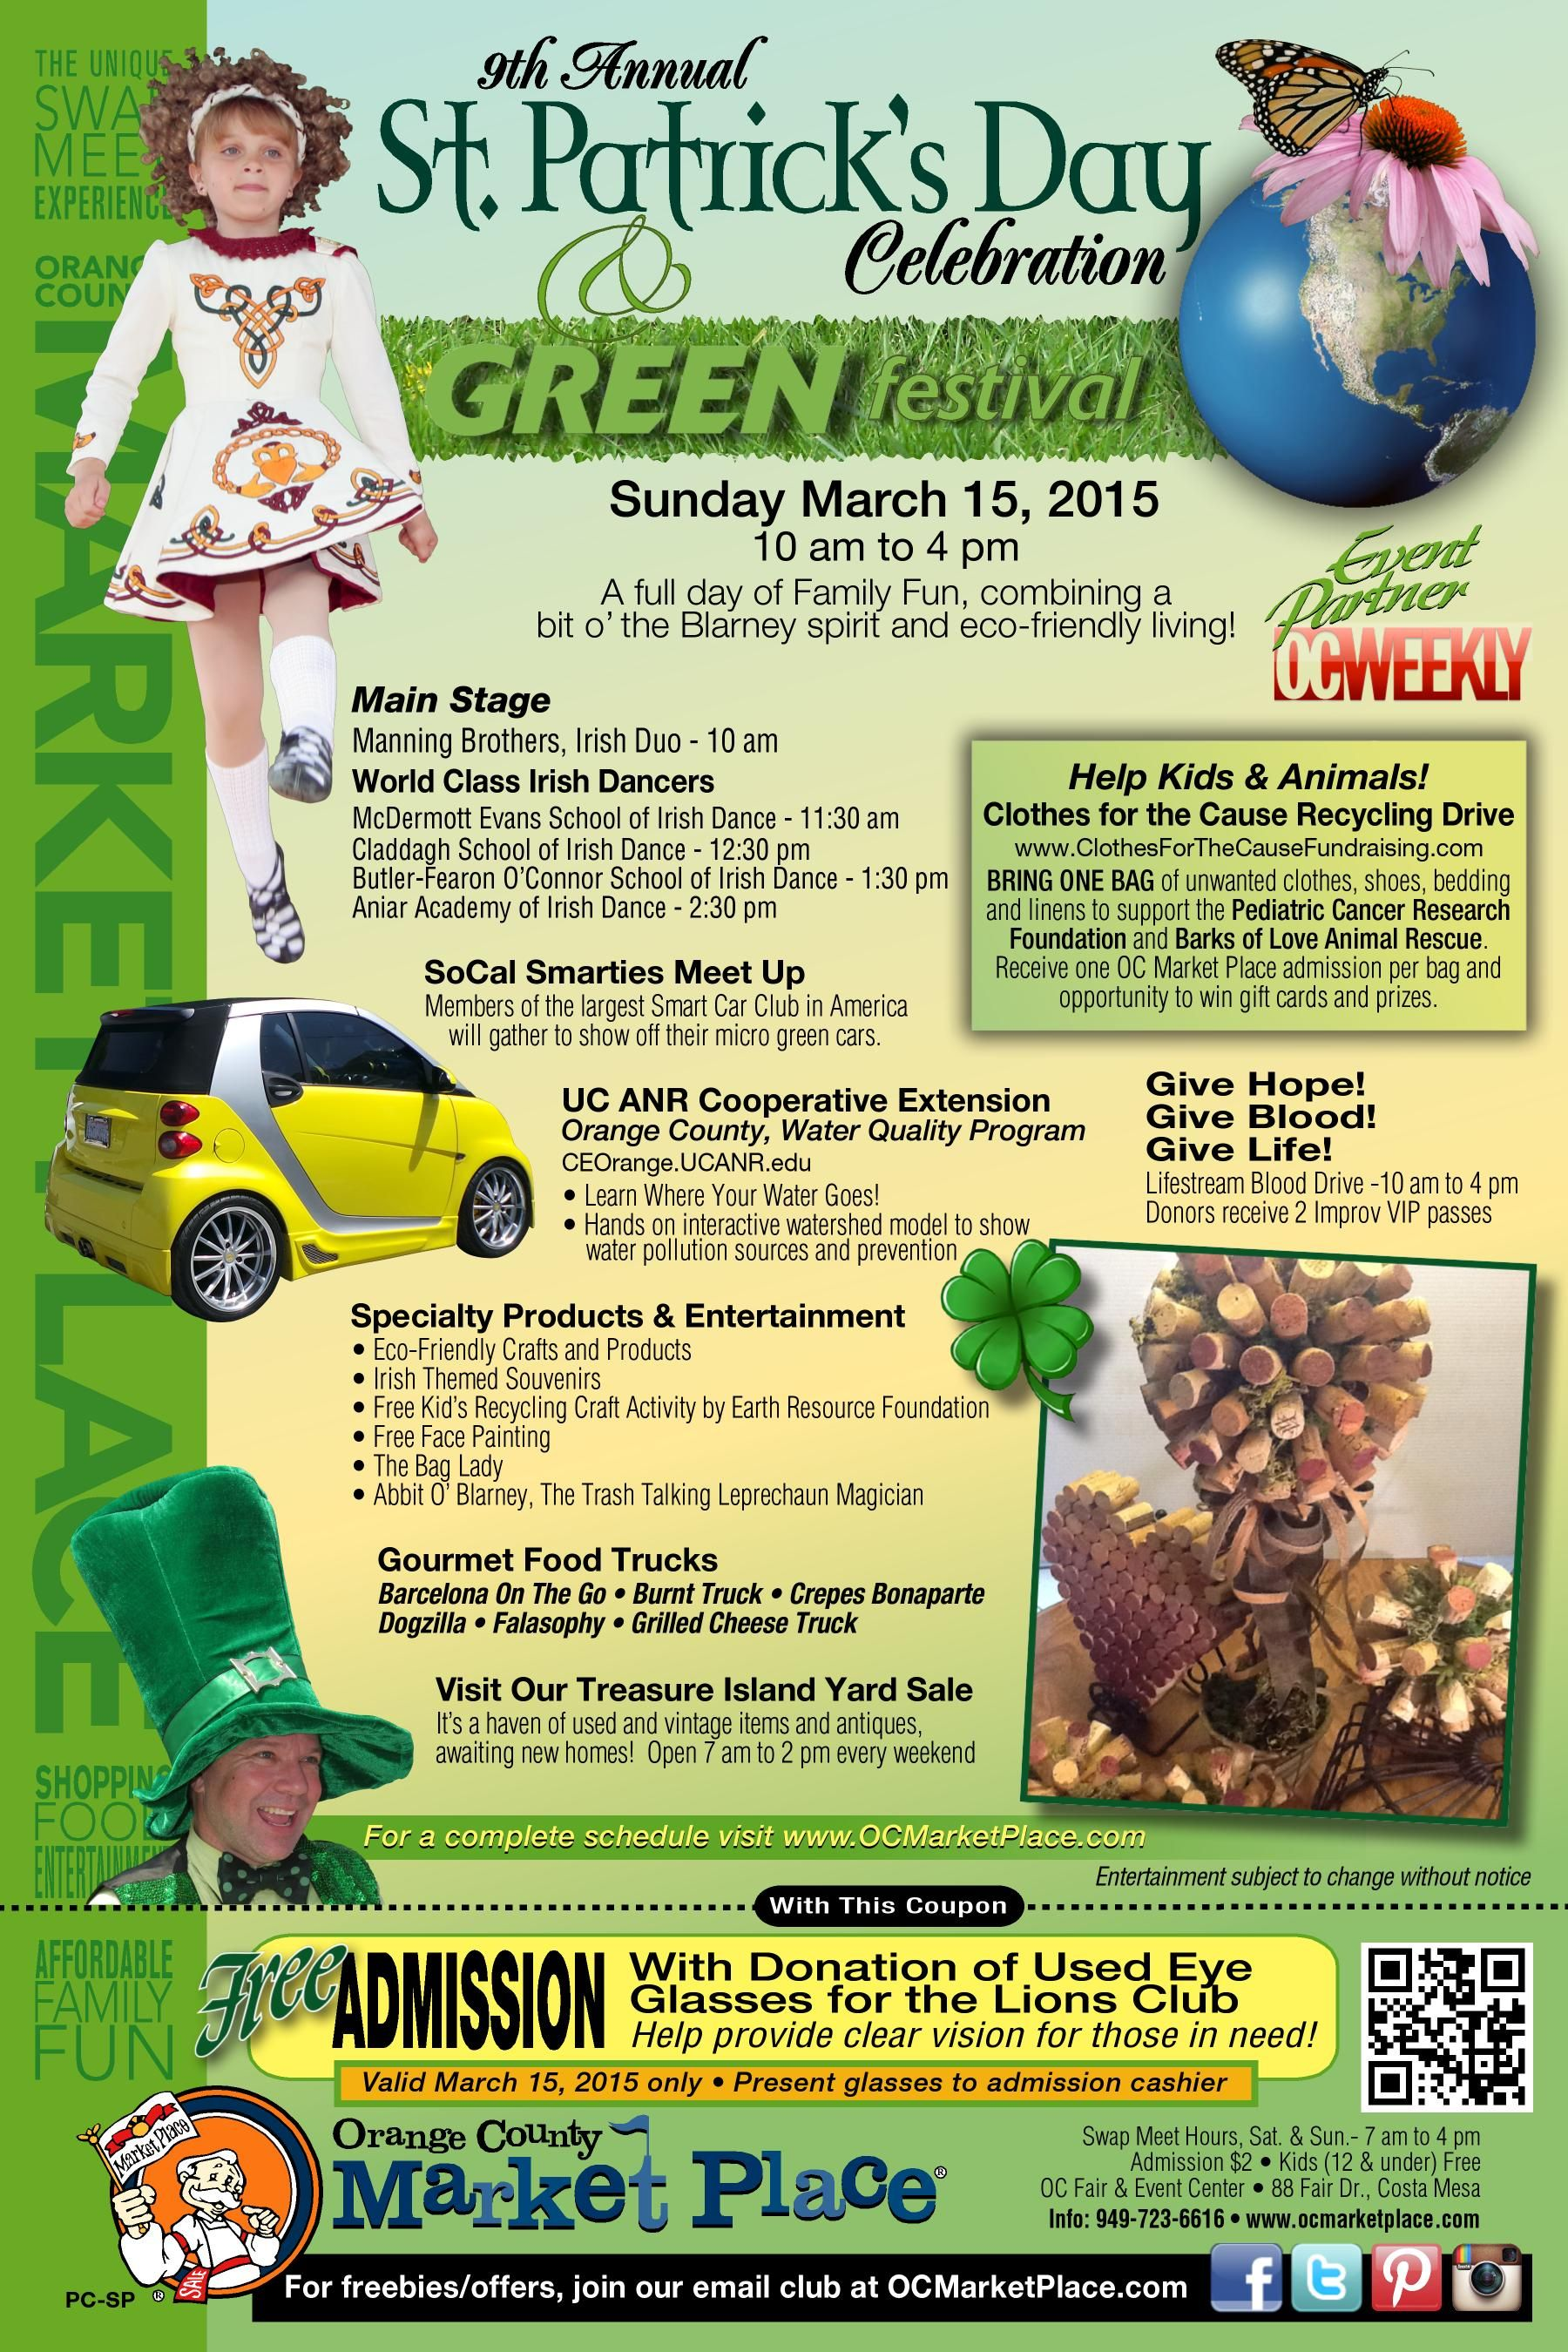 It's time to get GREEN with our green fusion event! It's